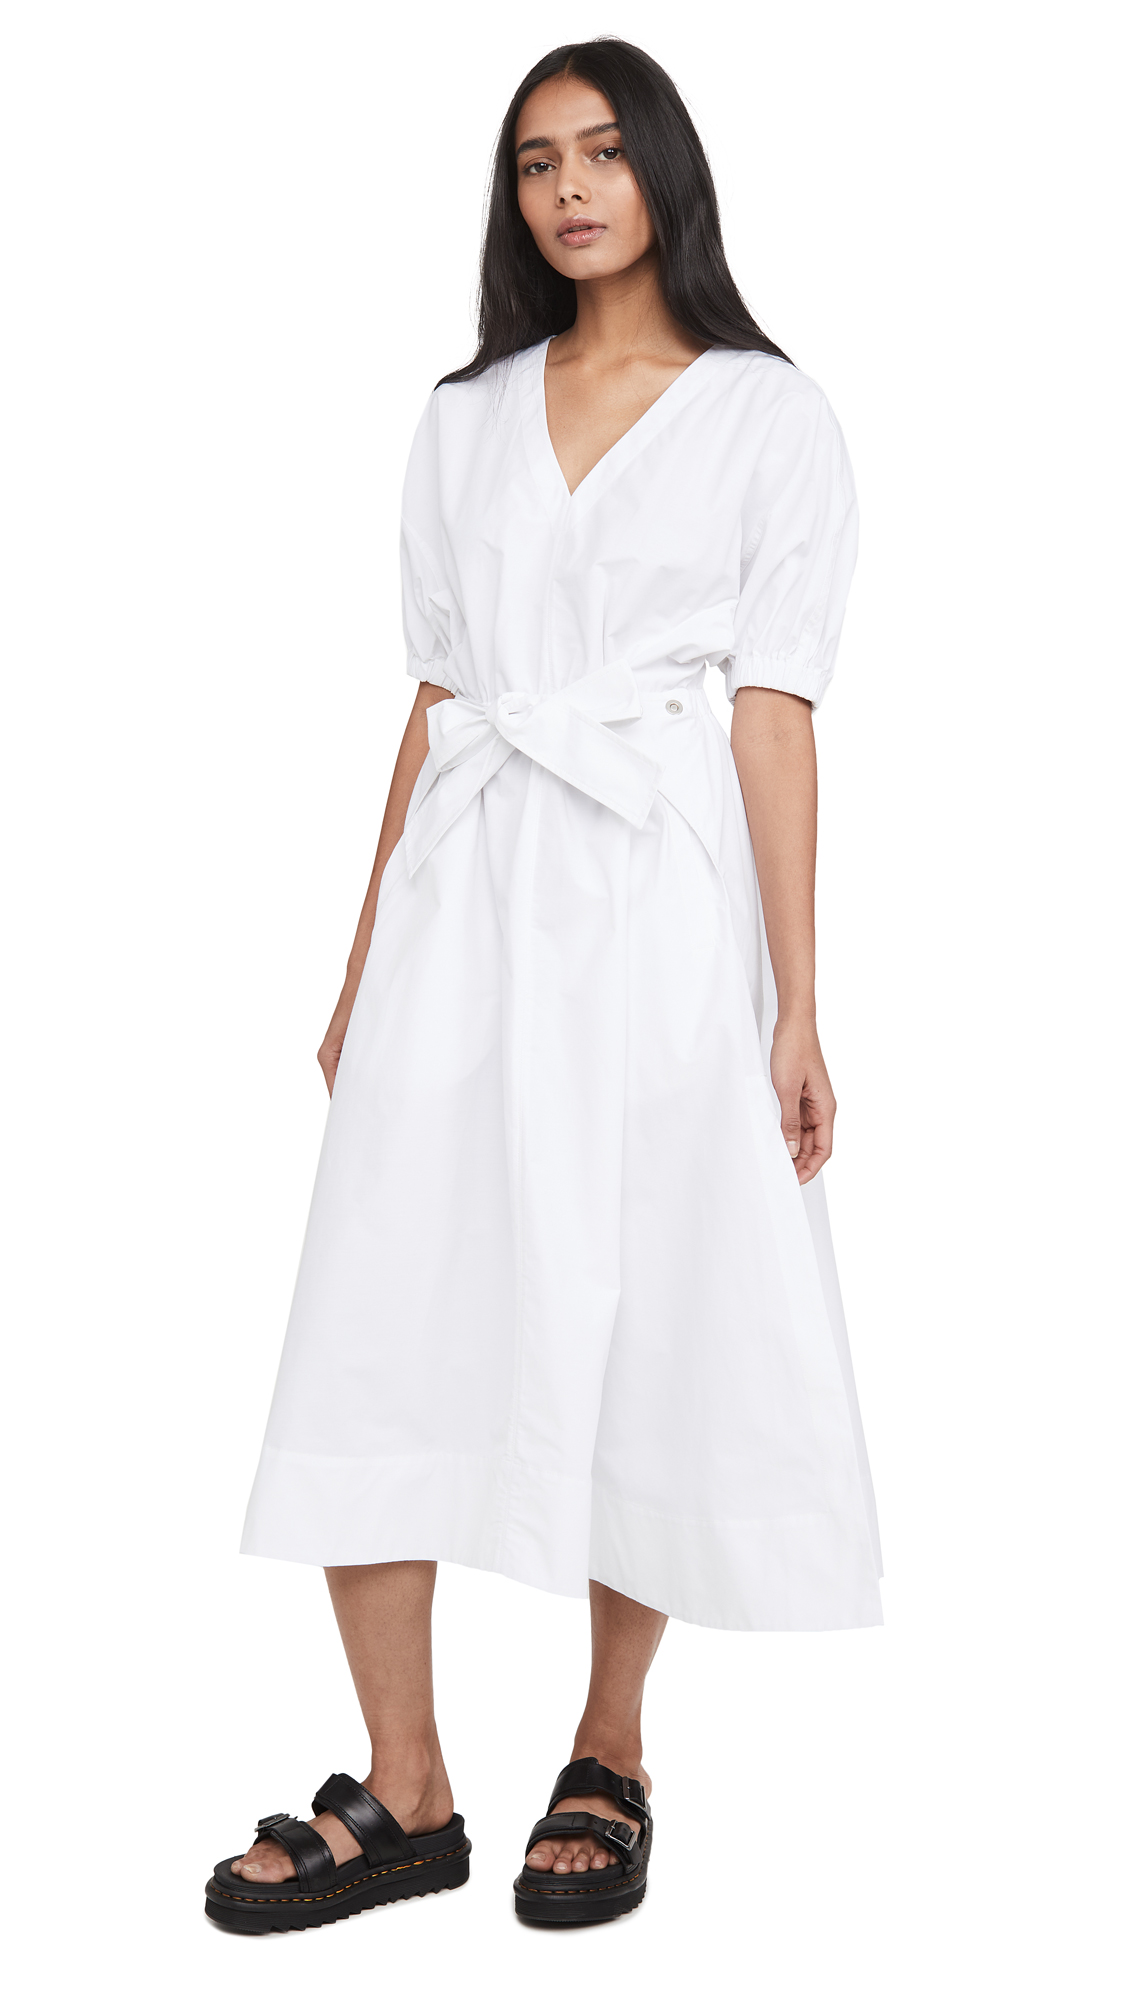 Buy 3.1 Phillip Lim Utility Belted Dress with Gathered Sleeves online beautiful 3.1 Phillip Lim Clothing, Dresses